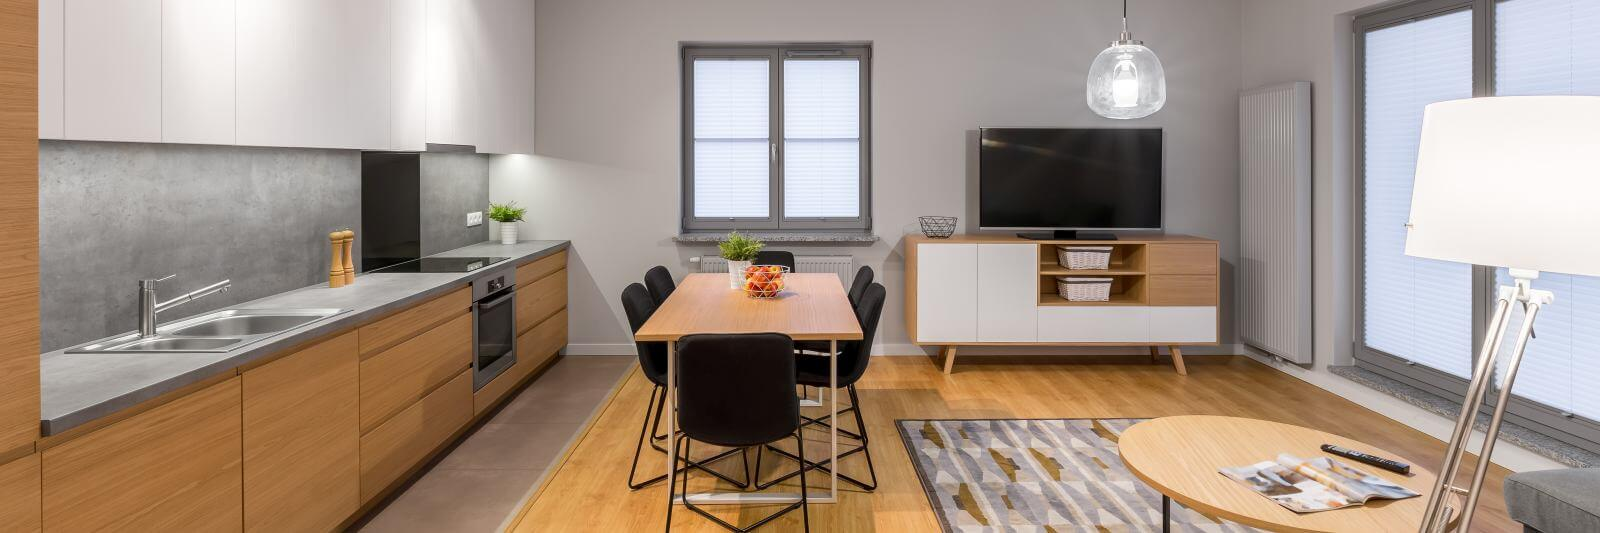 Multifunctional loft apartment with kitchen, dining area and tv living room, panorama